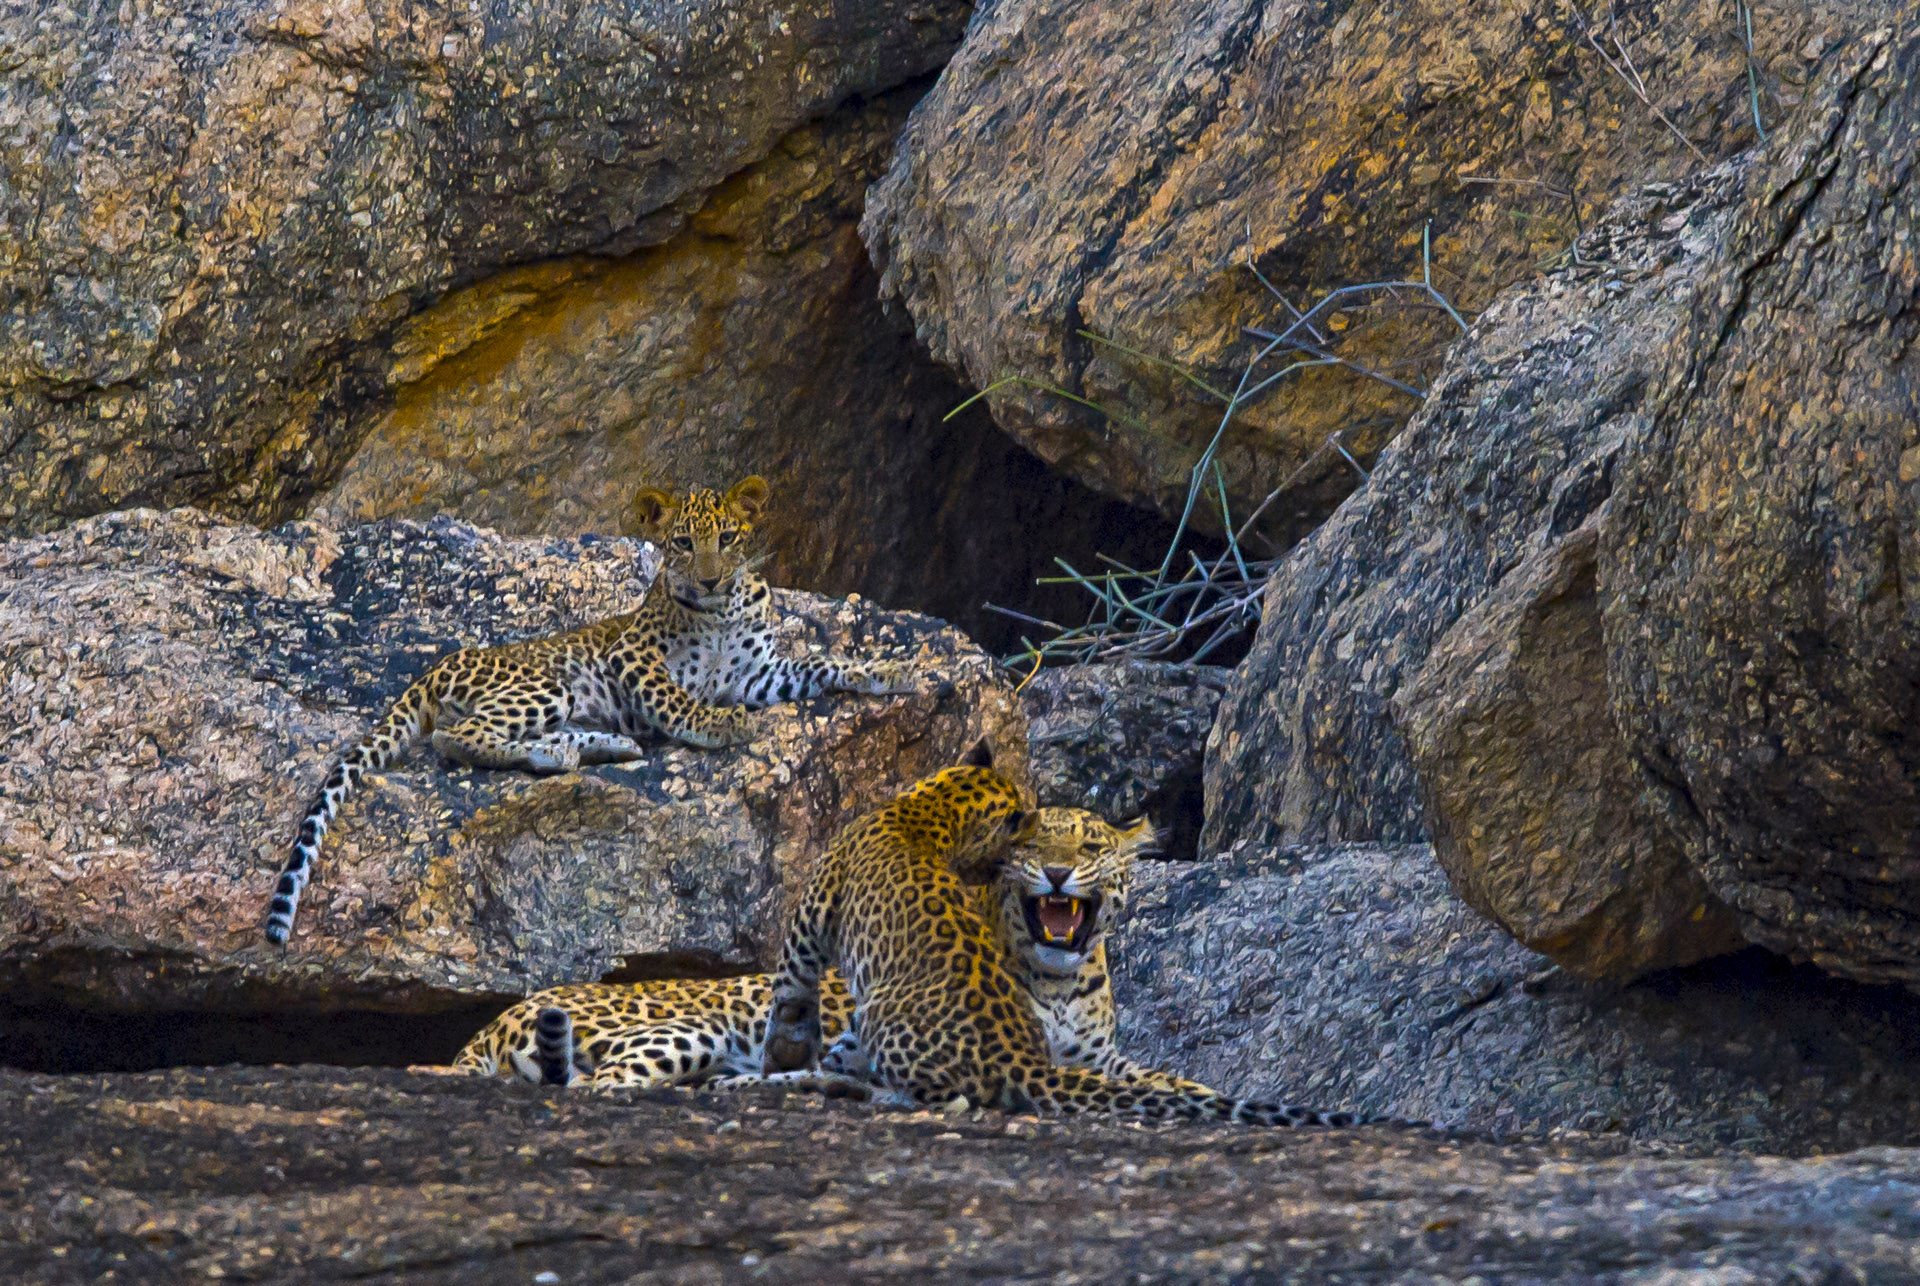 Rocky outcrops are extremely important habitats for leopards to survive and breed, especially outside protected areas. But these ancient rock forms are severely threatened due to quarrying. Photo: Dhritiman Mukherjee